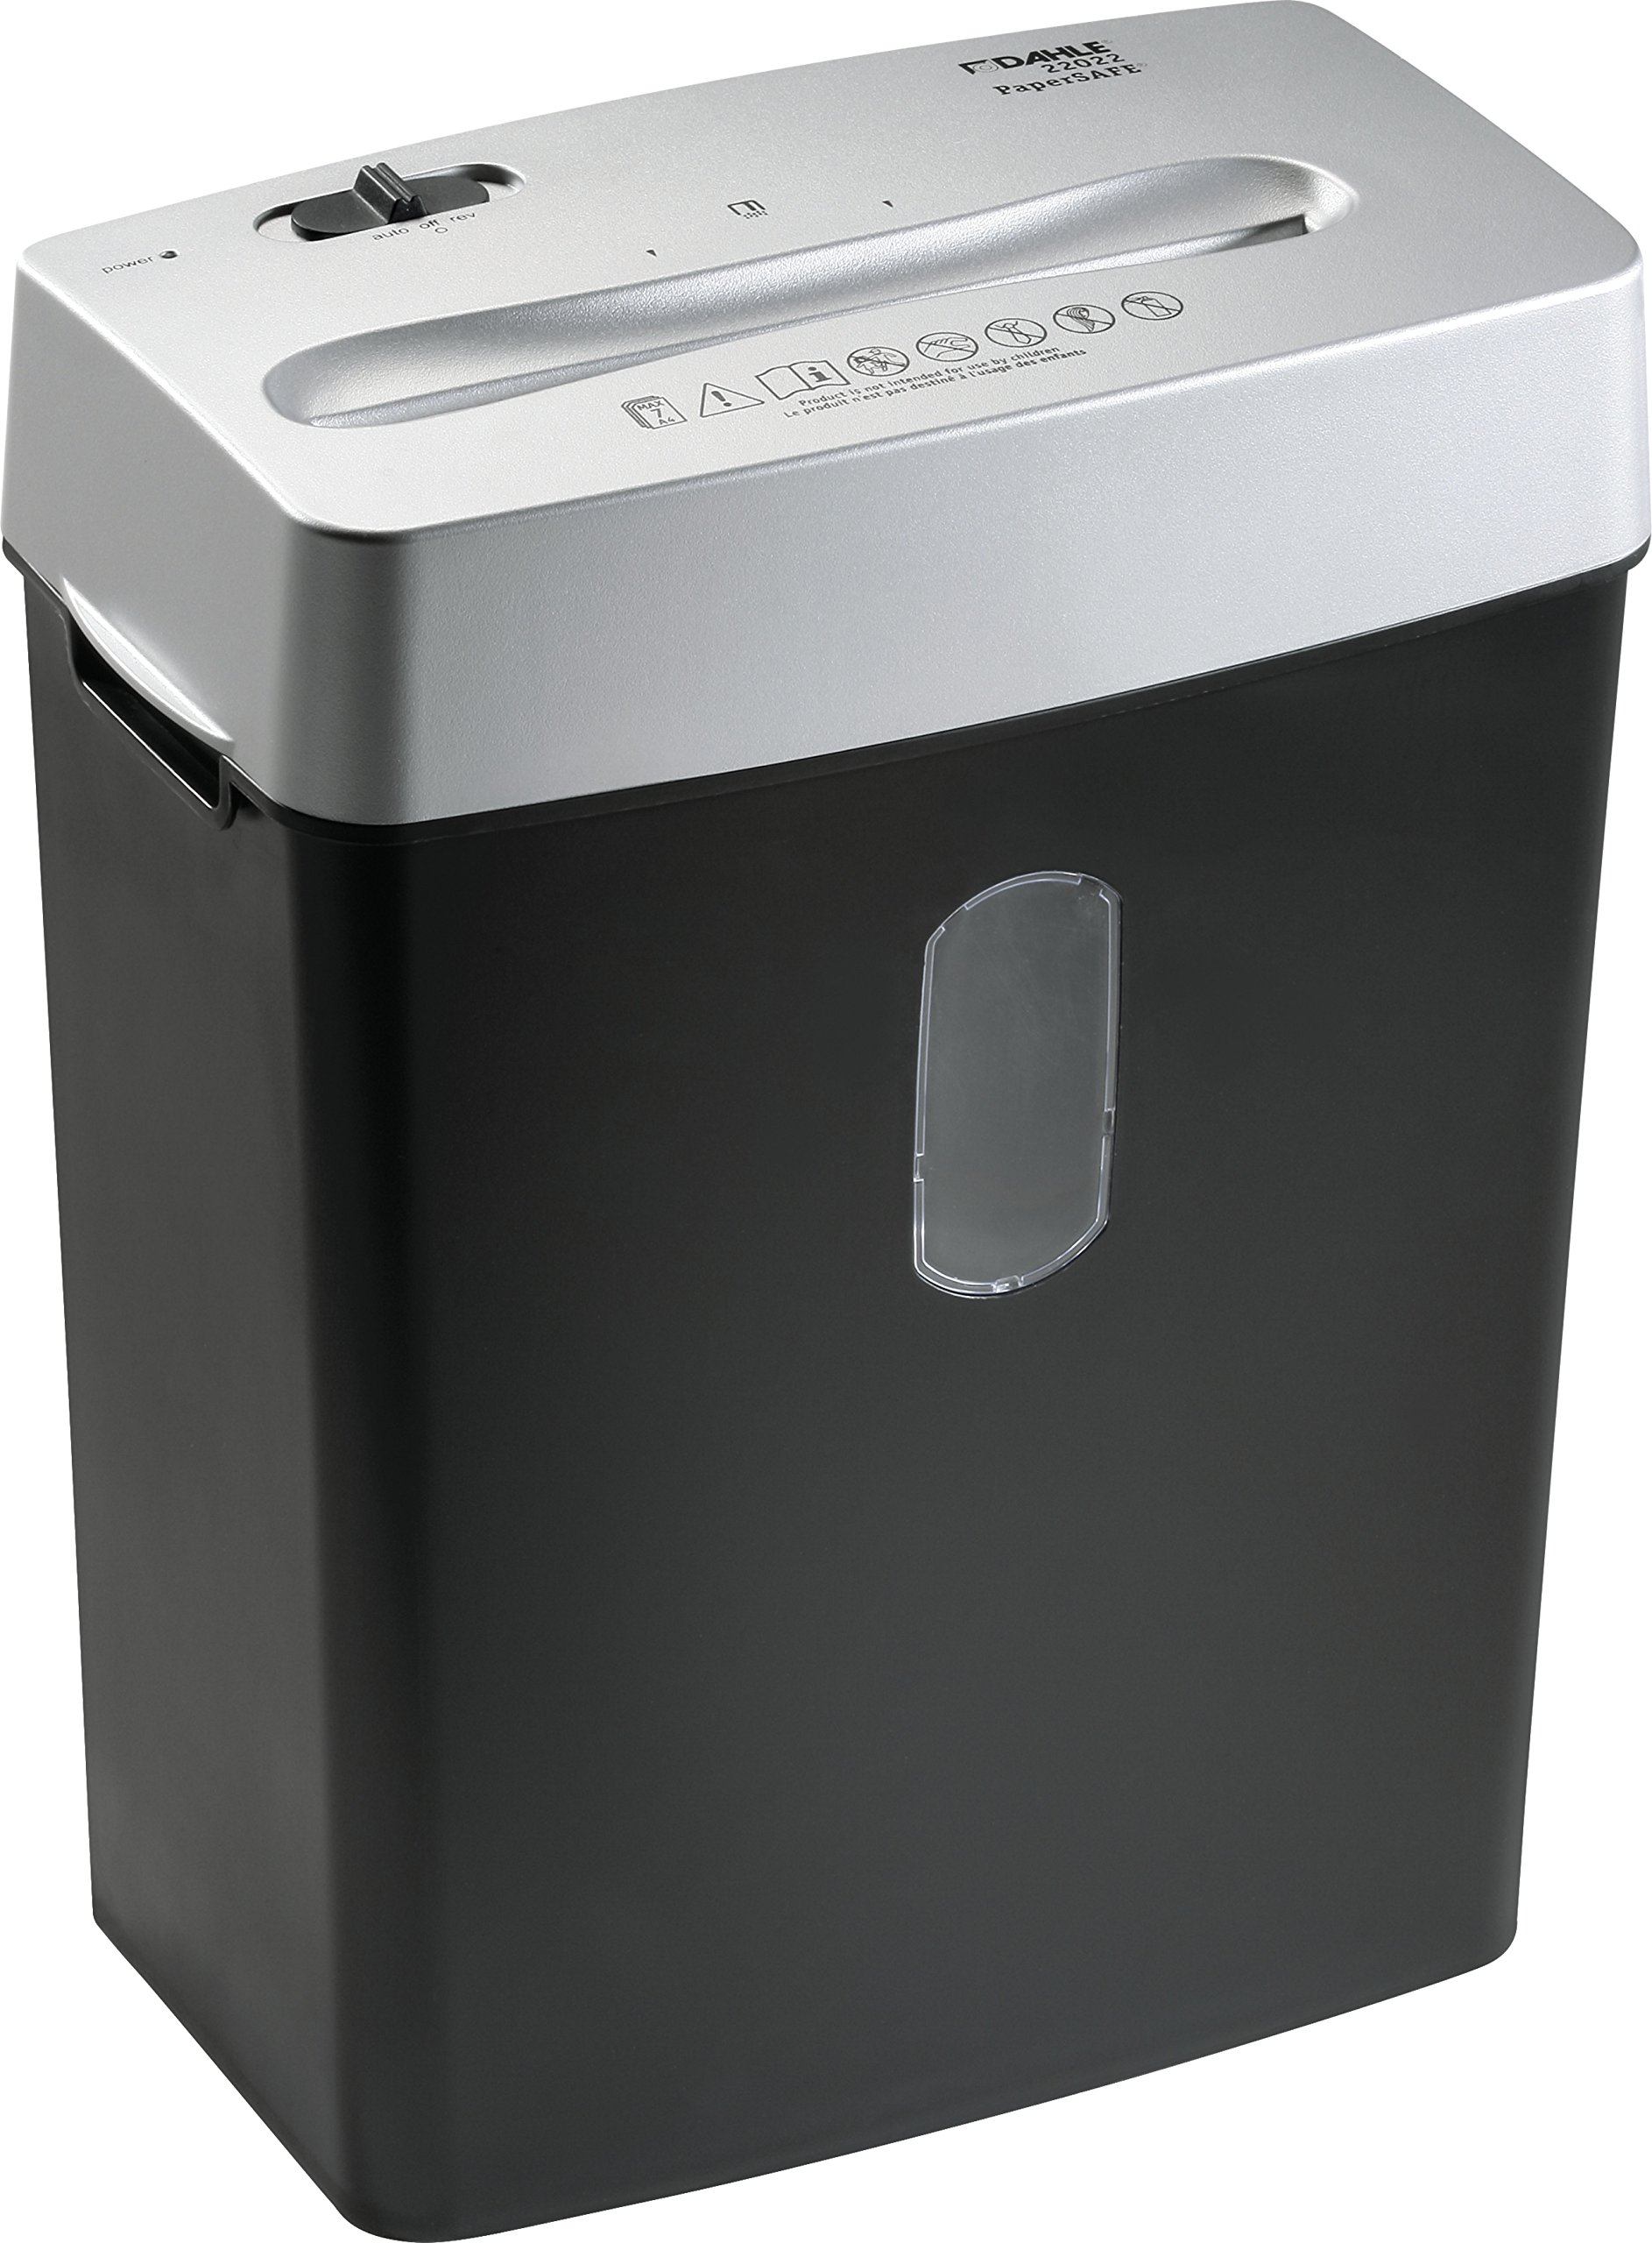 Dahle PaperSAFE 22022 Paper Shredder, Oil Free / Hassle Free, Security Level P-4, 7 Sheet Max, Shreds Staples, Paper Clips & Credit Cards